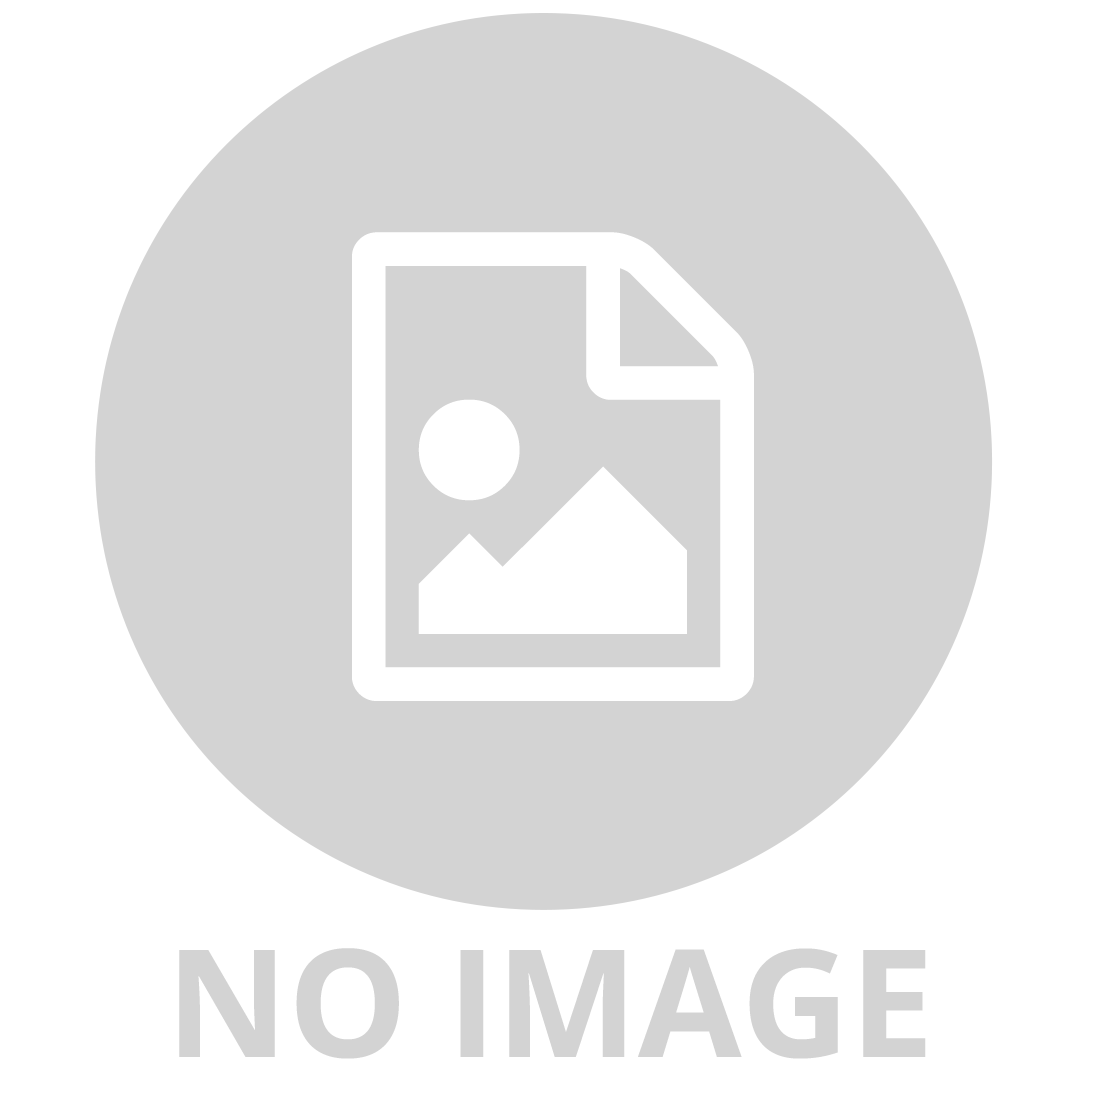 VTECH KIDIZOOM DUO 5 PINK CAMERA